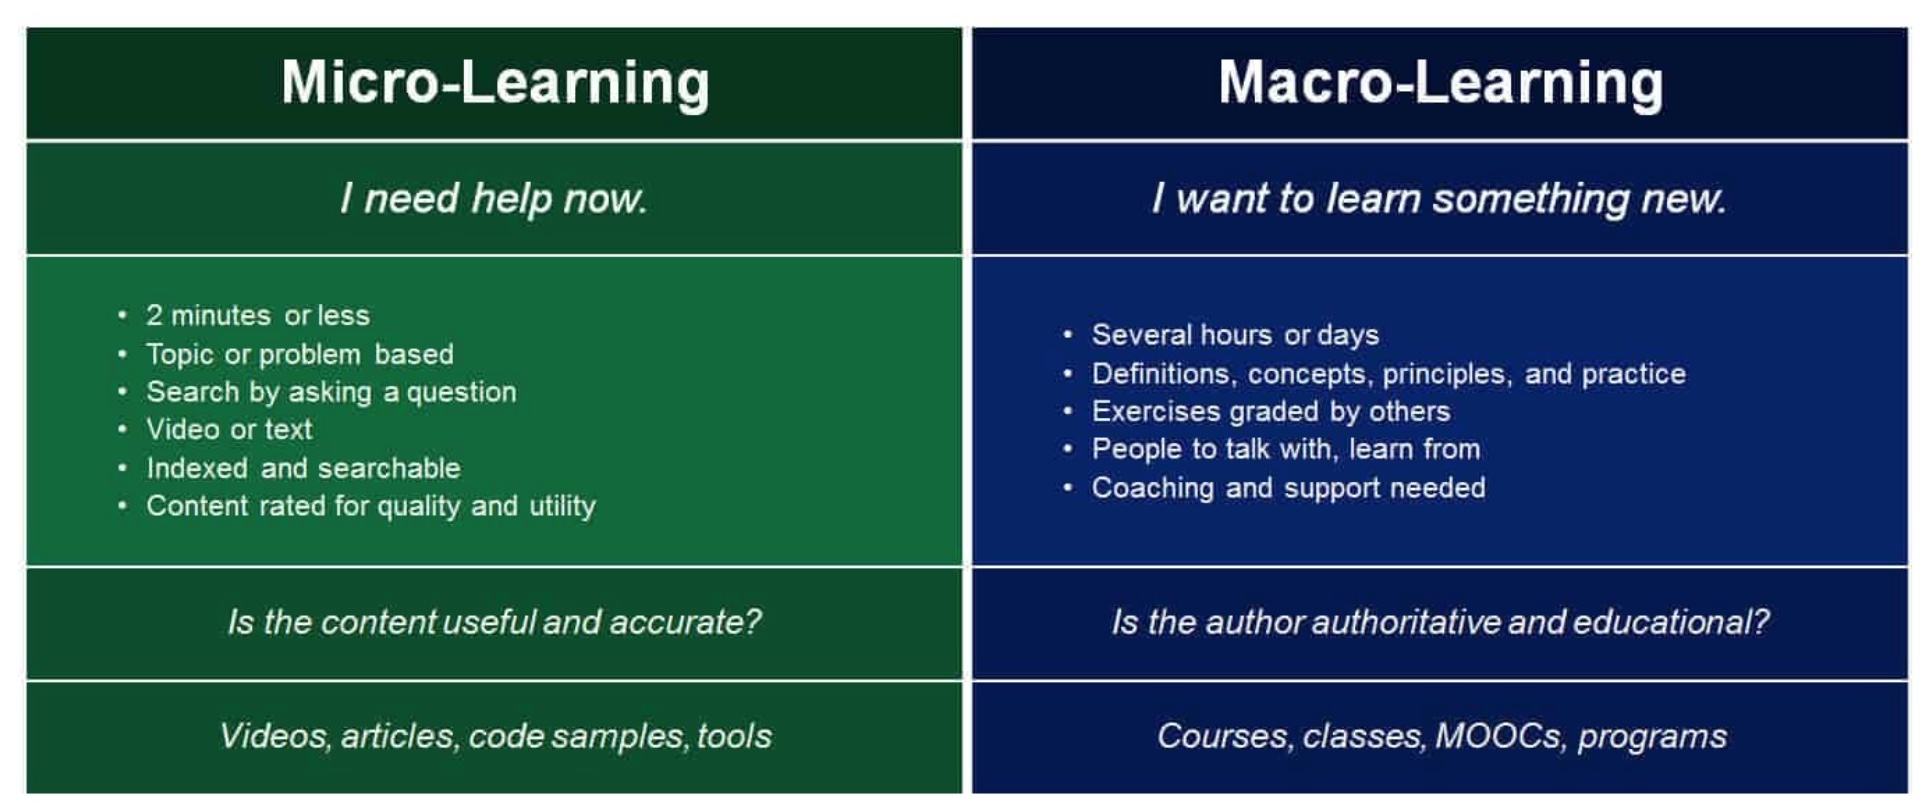 microlearning Vs macrolearning